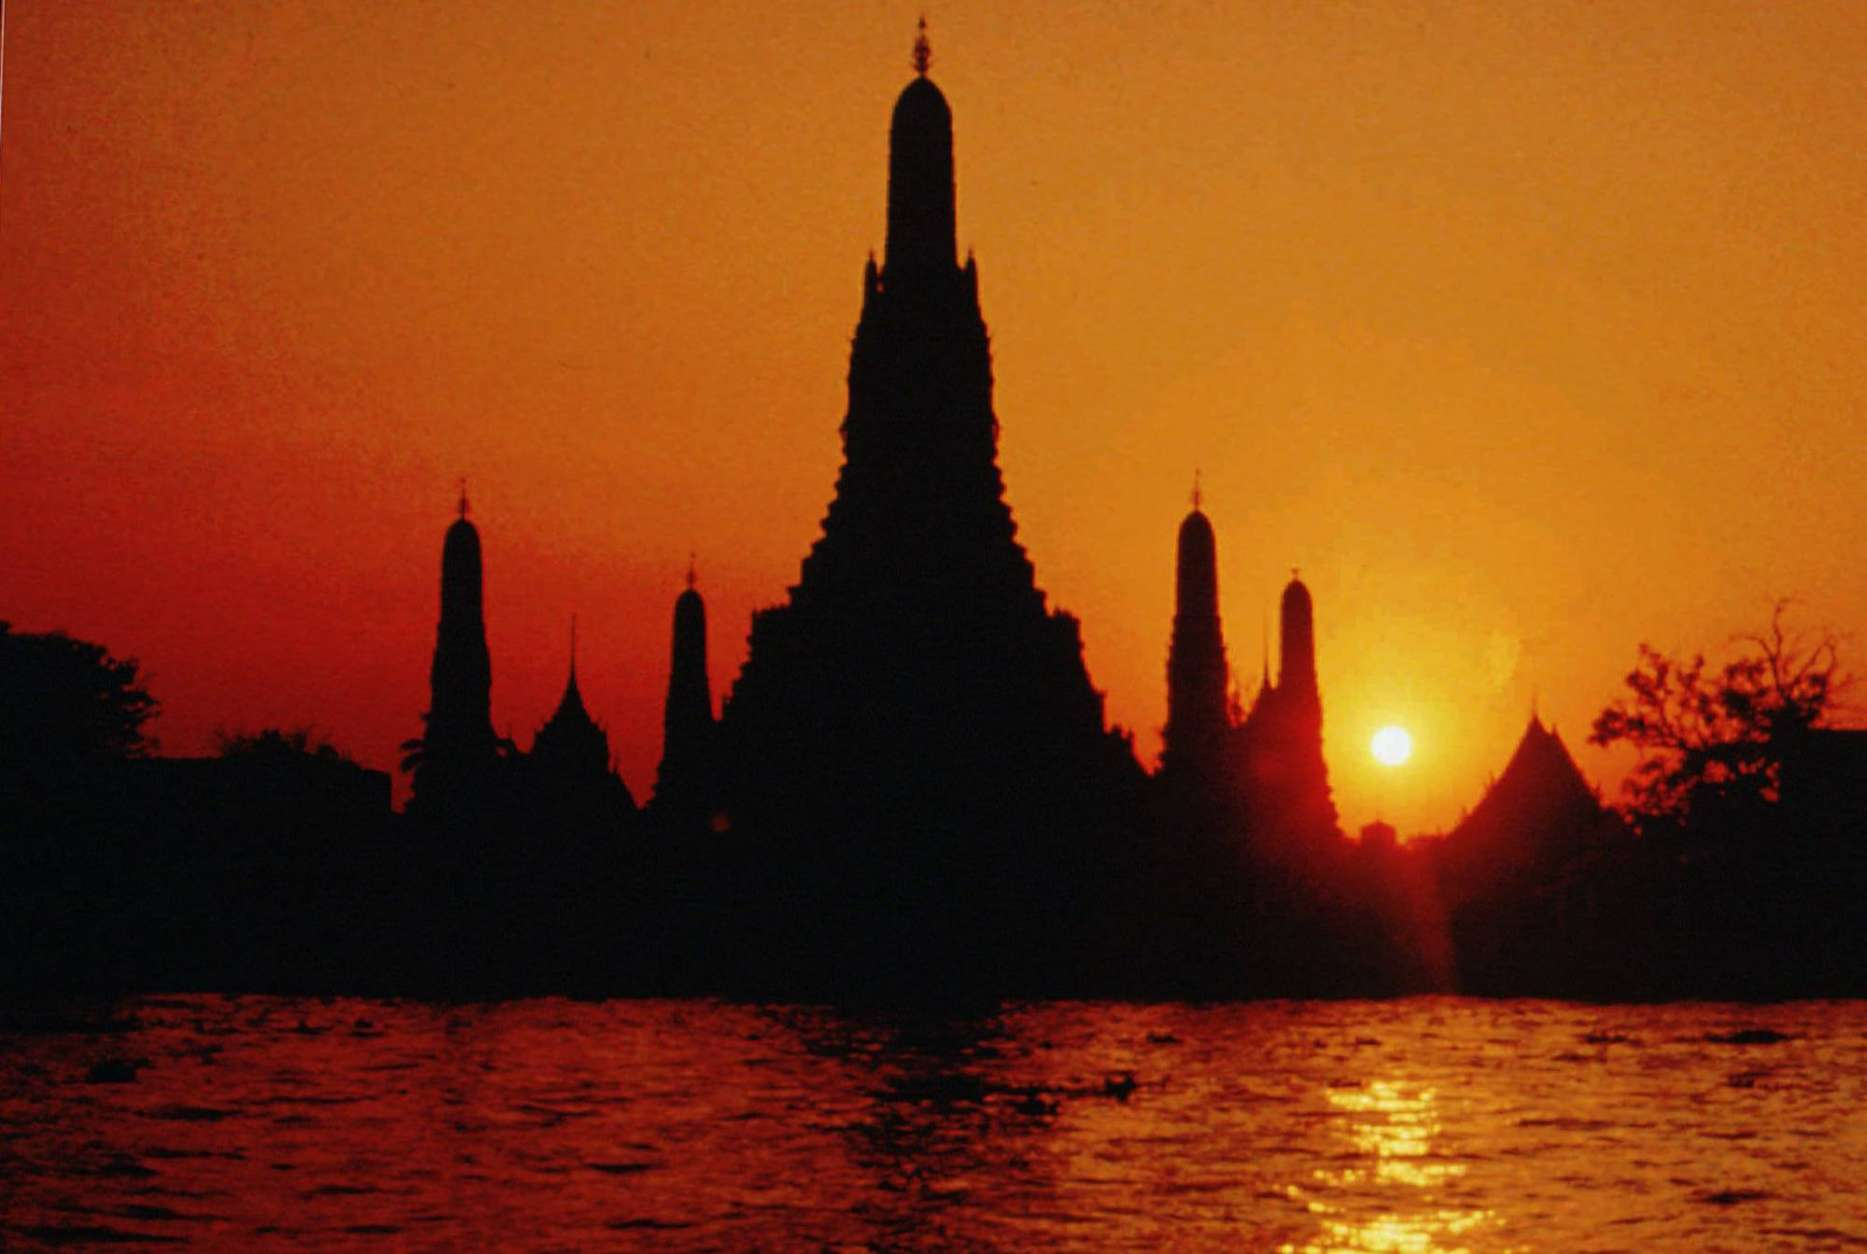 "FILE - In this April, 1996, file photo, the sun sets behind the stupa of the Buddhist temple Wat Arun or the ""Temple of Dawn"" seen from across the banks of the Chao Phraya river in Bangkok, Thailand. Two Americans who maintained a social media account called ""Traveling Butts"" have been arrested in Thailand after posting photos of themselves at the famous temple with their rear ends exposed. Deputy police spokesman Krisana Pattanacharoen says the men were arrested Tuesday night at a Bangkok airport and face public indecency charges. (AP Photo/Sakchai Lalit, File)"